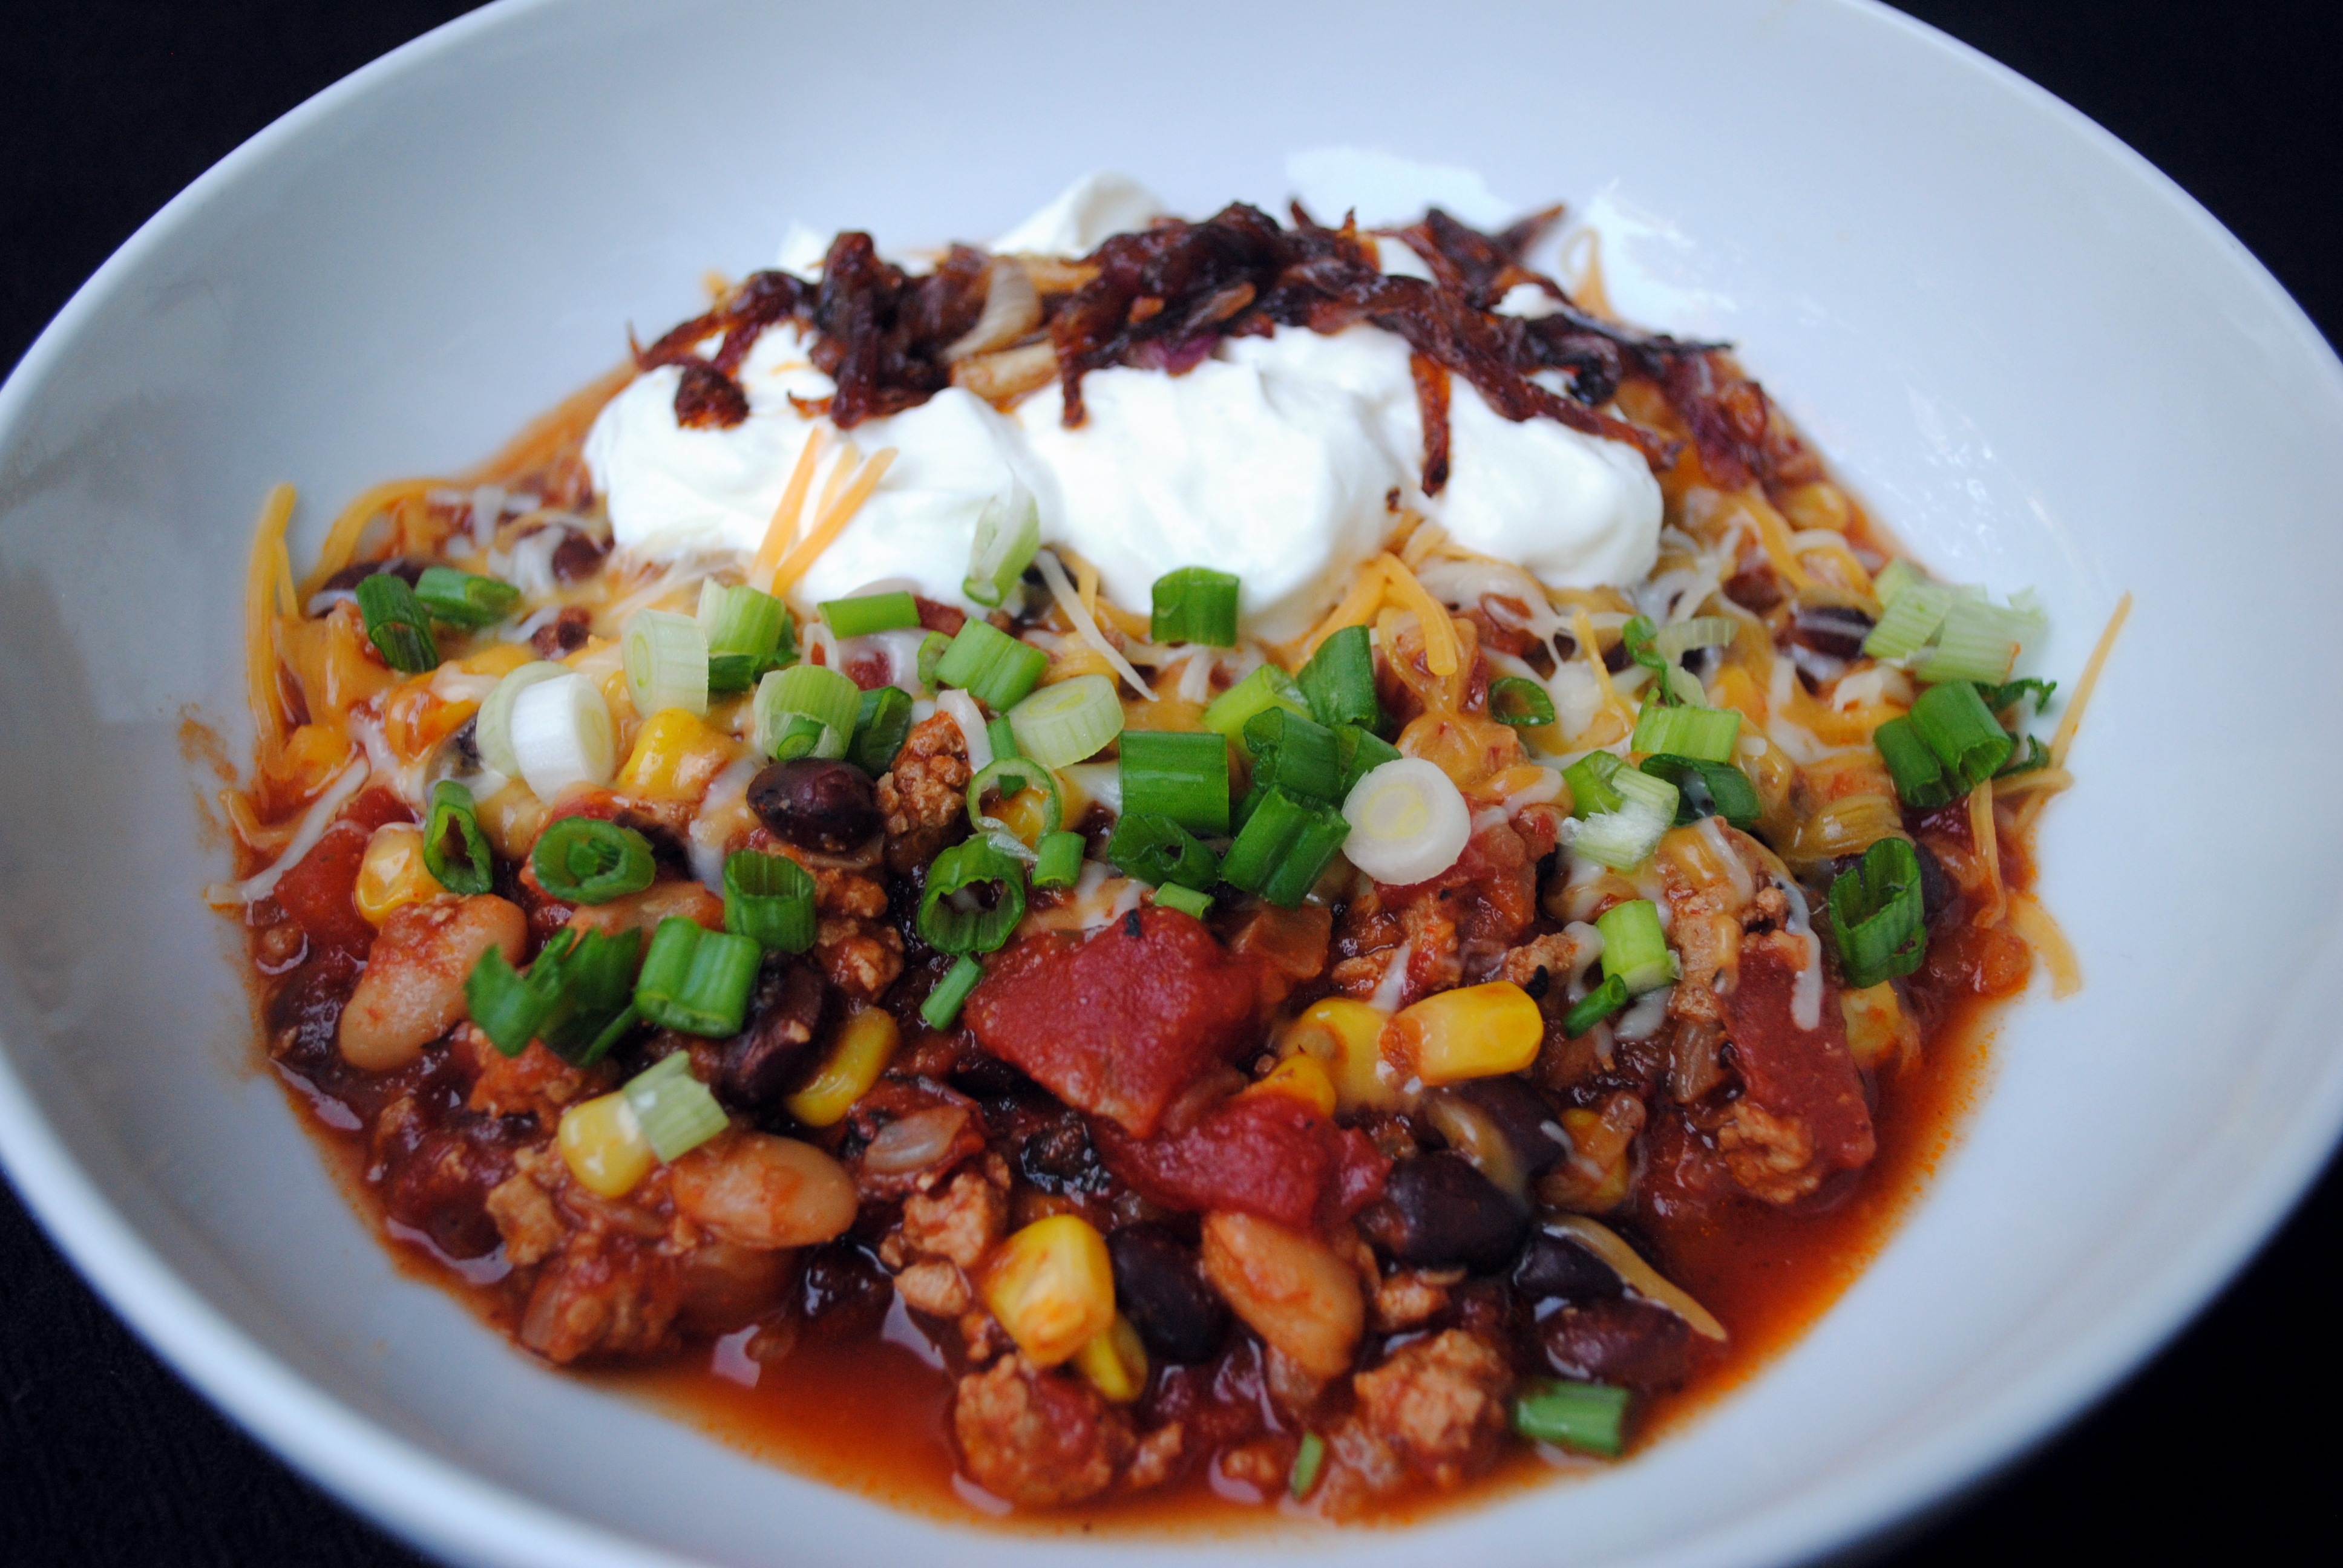 Slow Cooker Caramelized Onion  Chipotle Turkey Chili Clare Cooks!